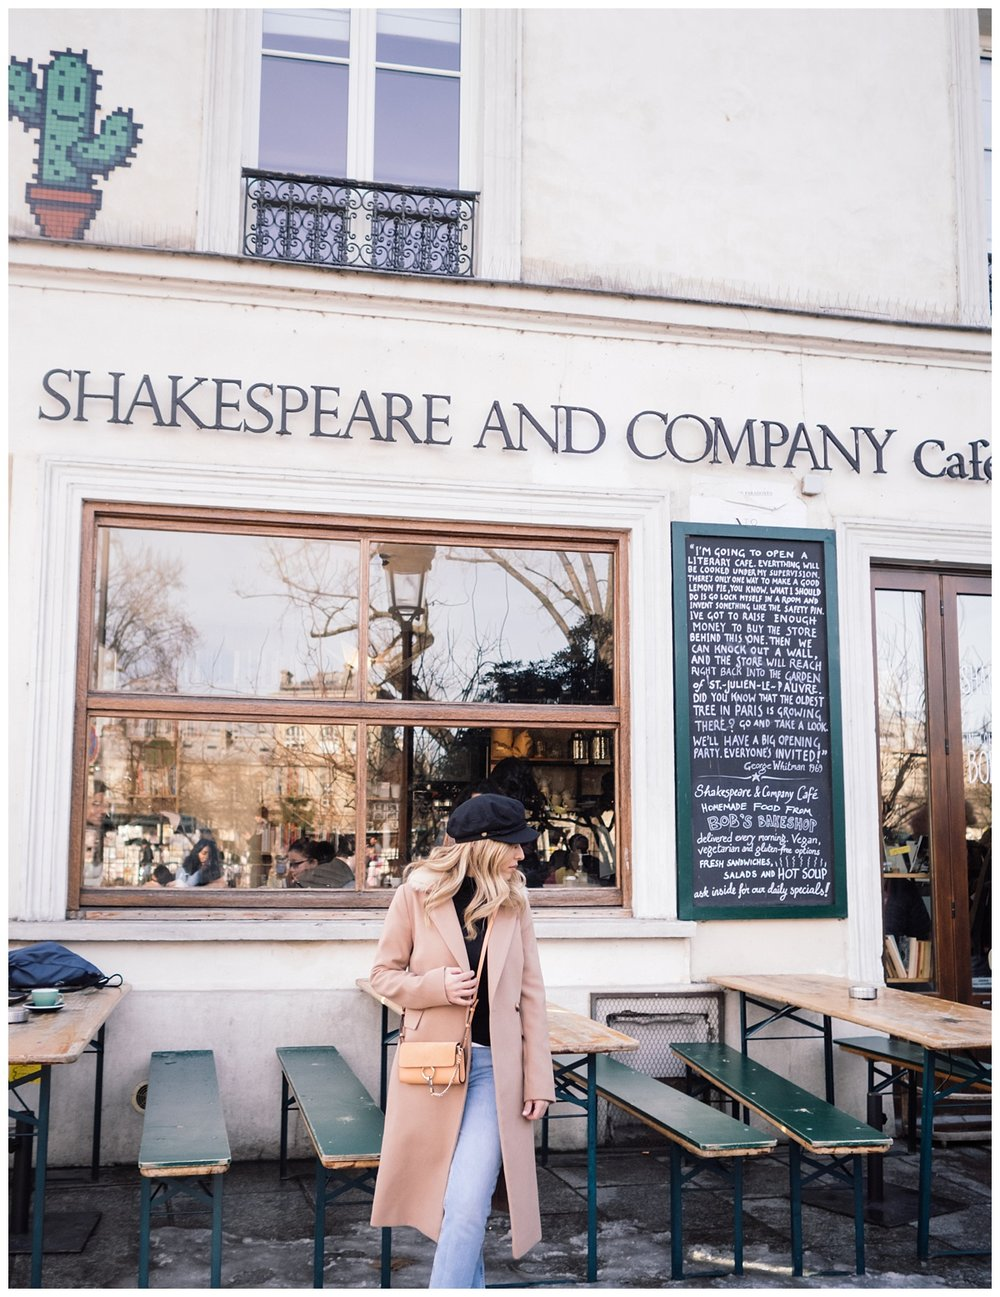 Also visited the Shakespeare Café and book store. It was so cute...felt like I was in a movie.